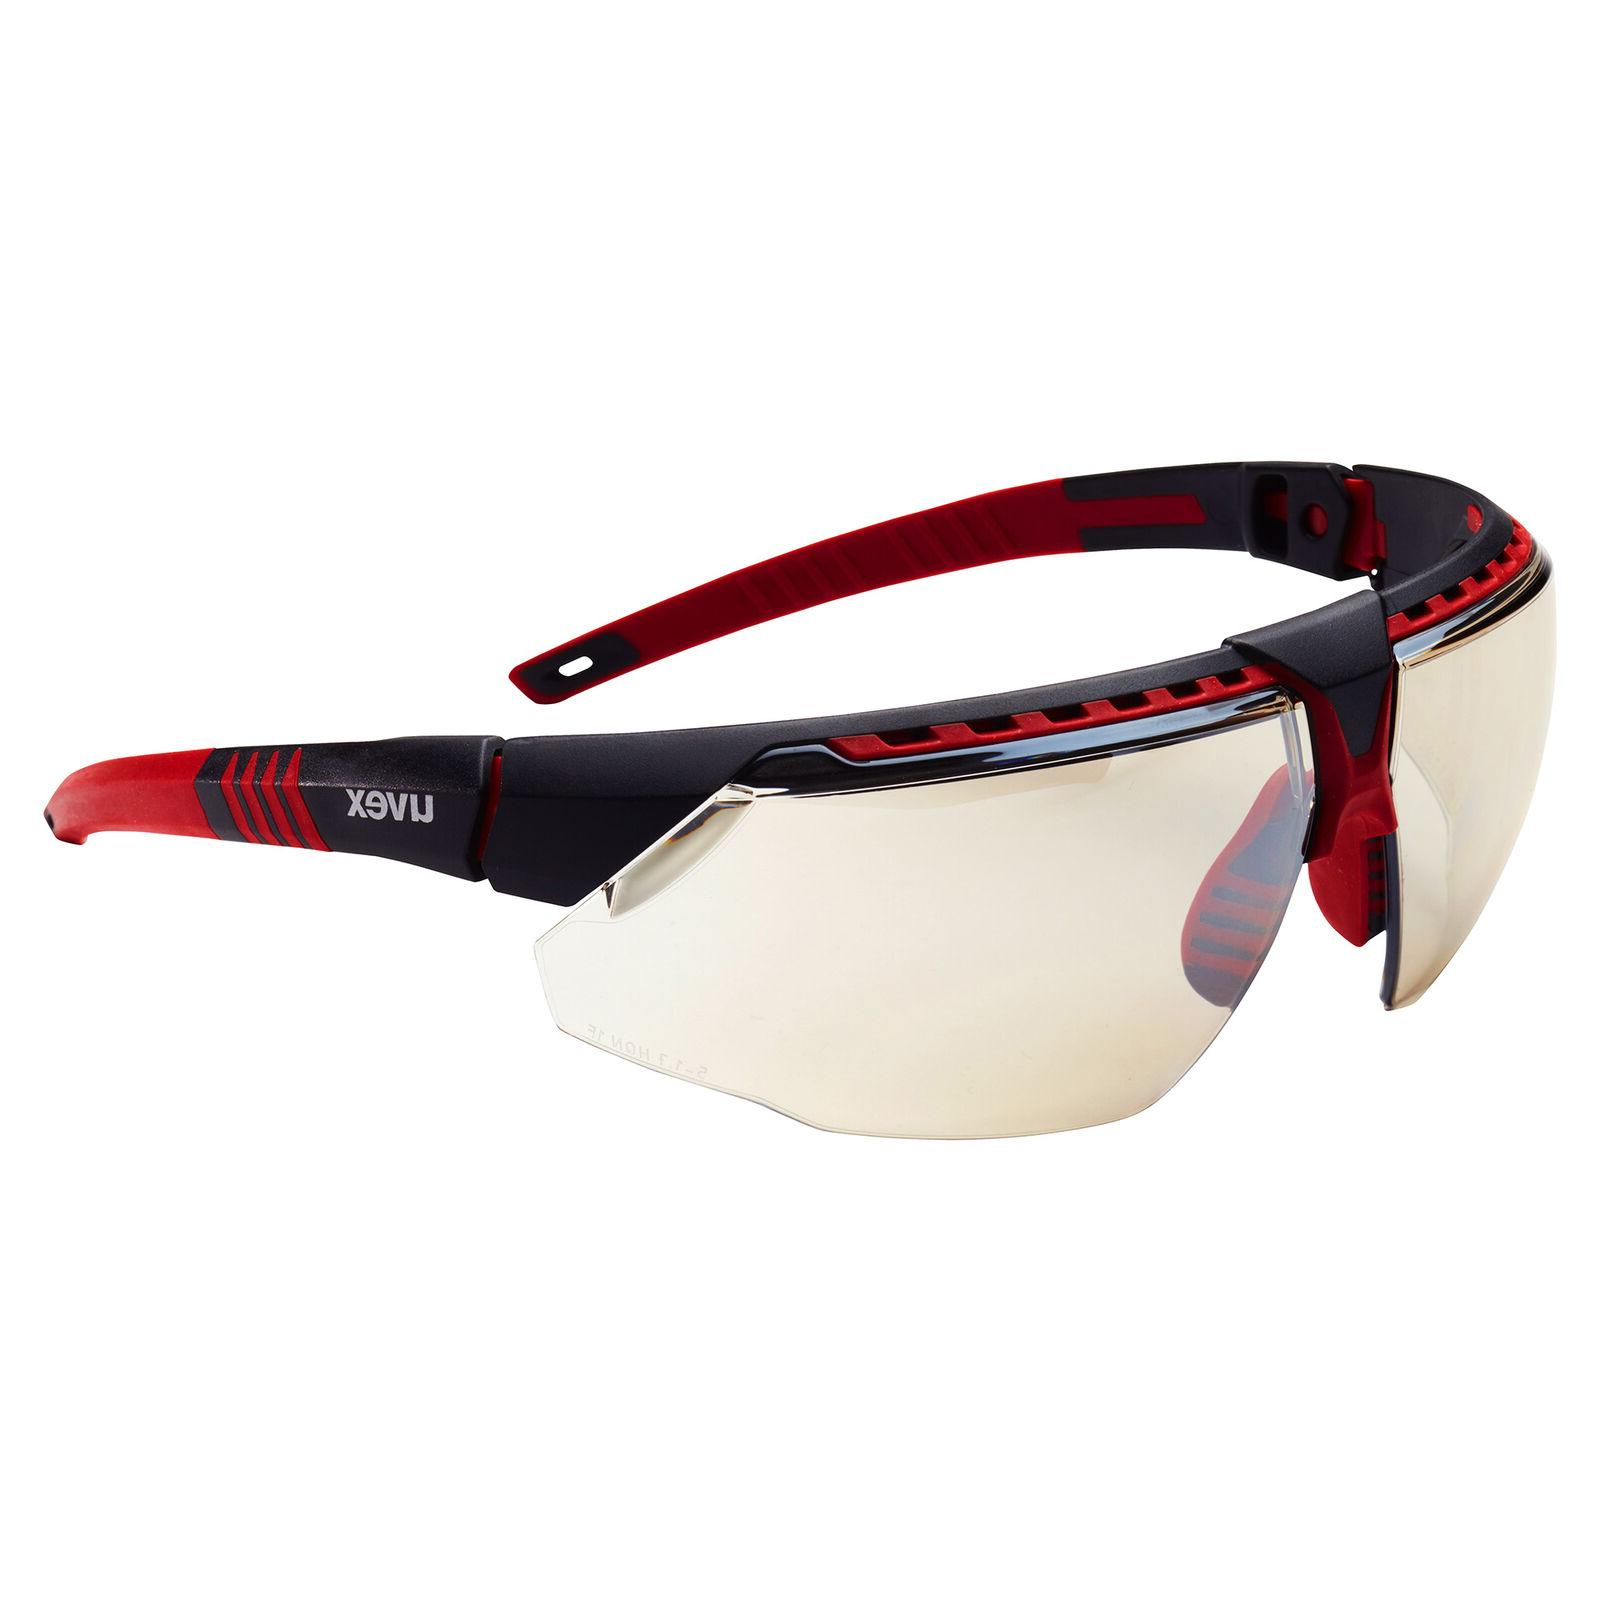 Uvex Avatar Safety Glasses with Indoor Outdoor Mirror Lens,